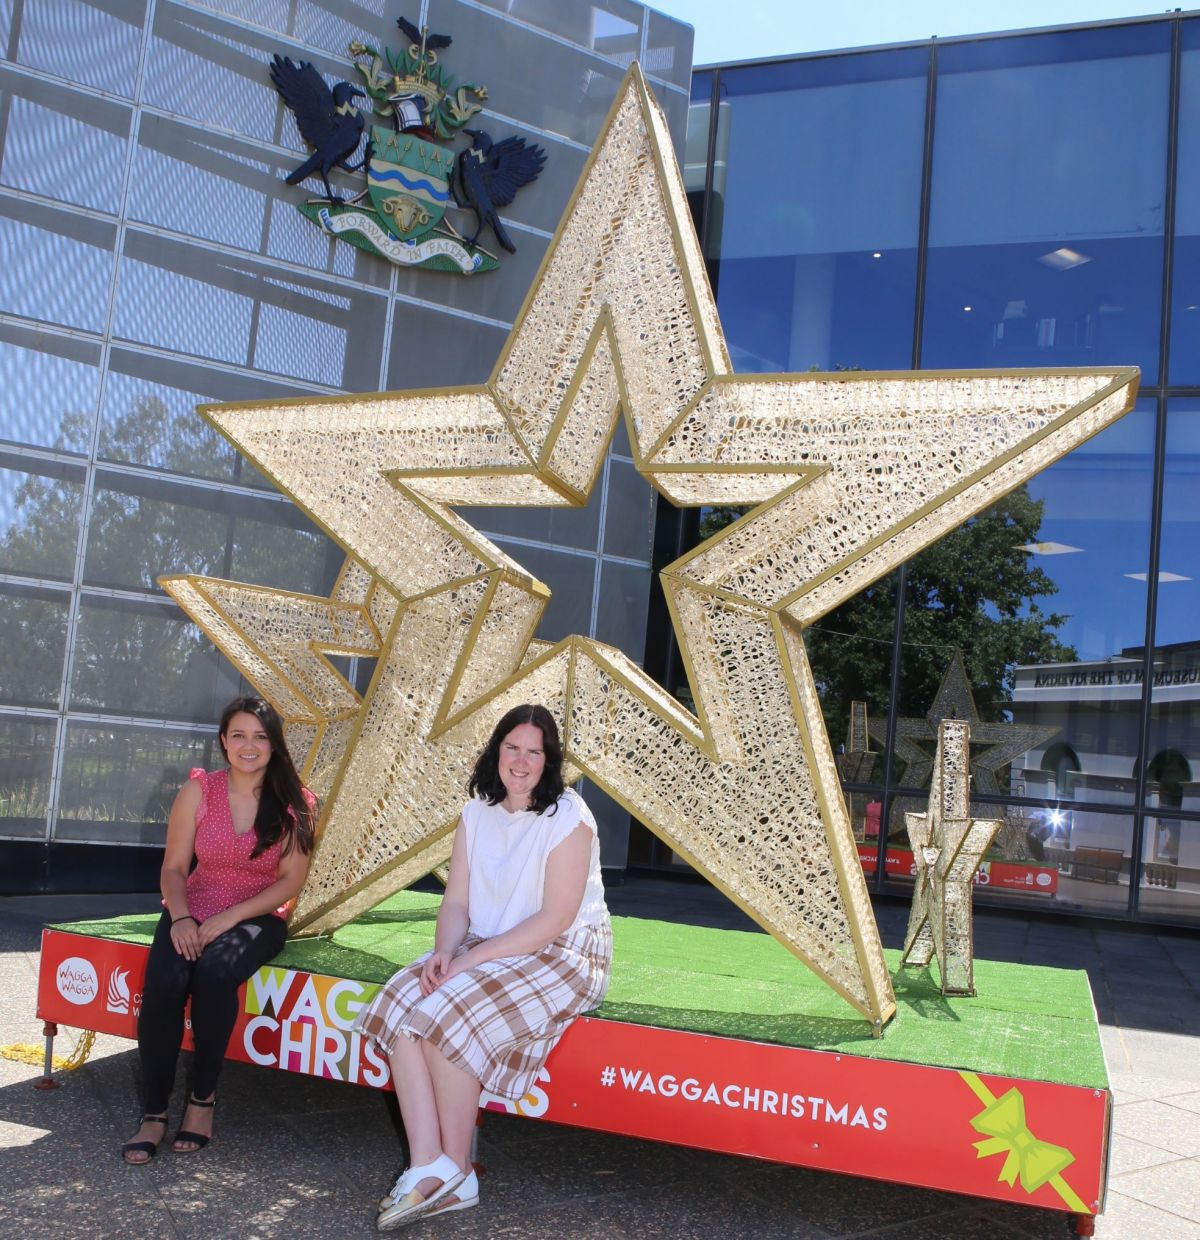 Two women sit in front of a large star